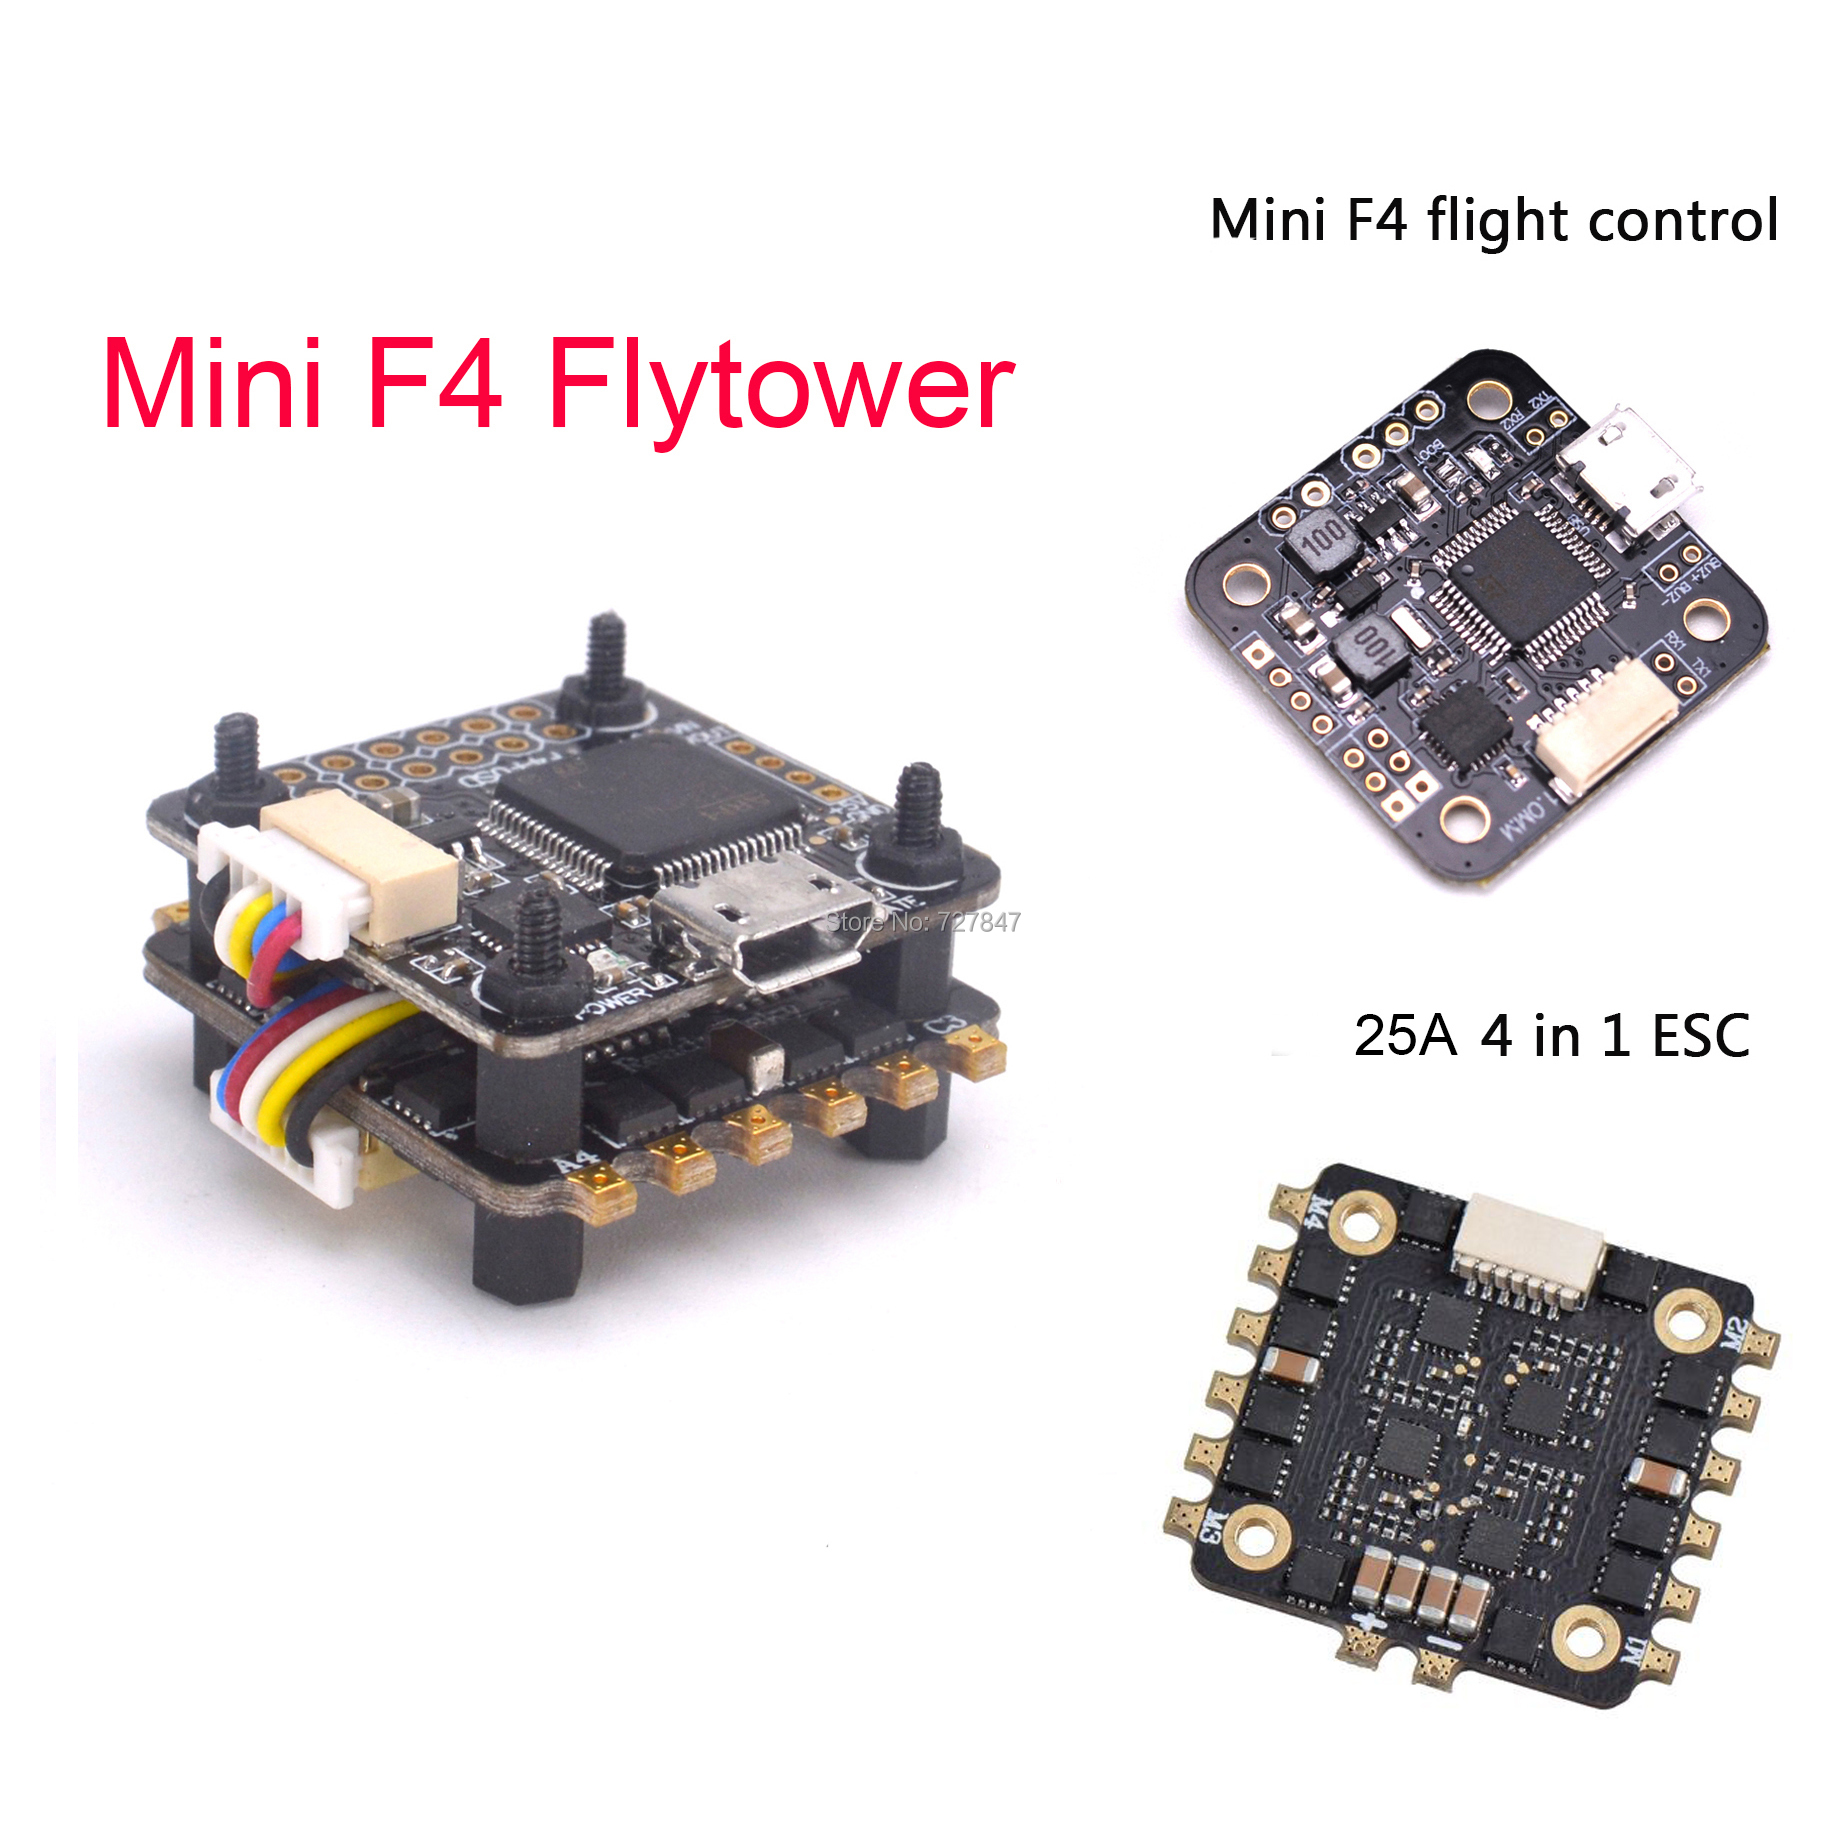 Mini F3 / F4 Flytower Flight Control Integrated OSD 4 In 1 Built-in 5V 1A BEC 25a ESC Support Dshot For FPV RC Drone